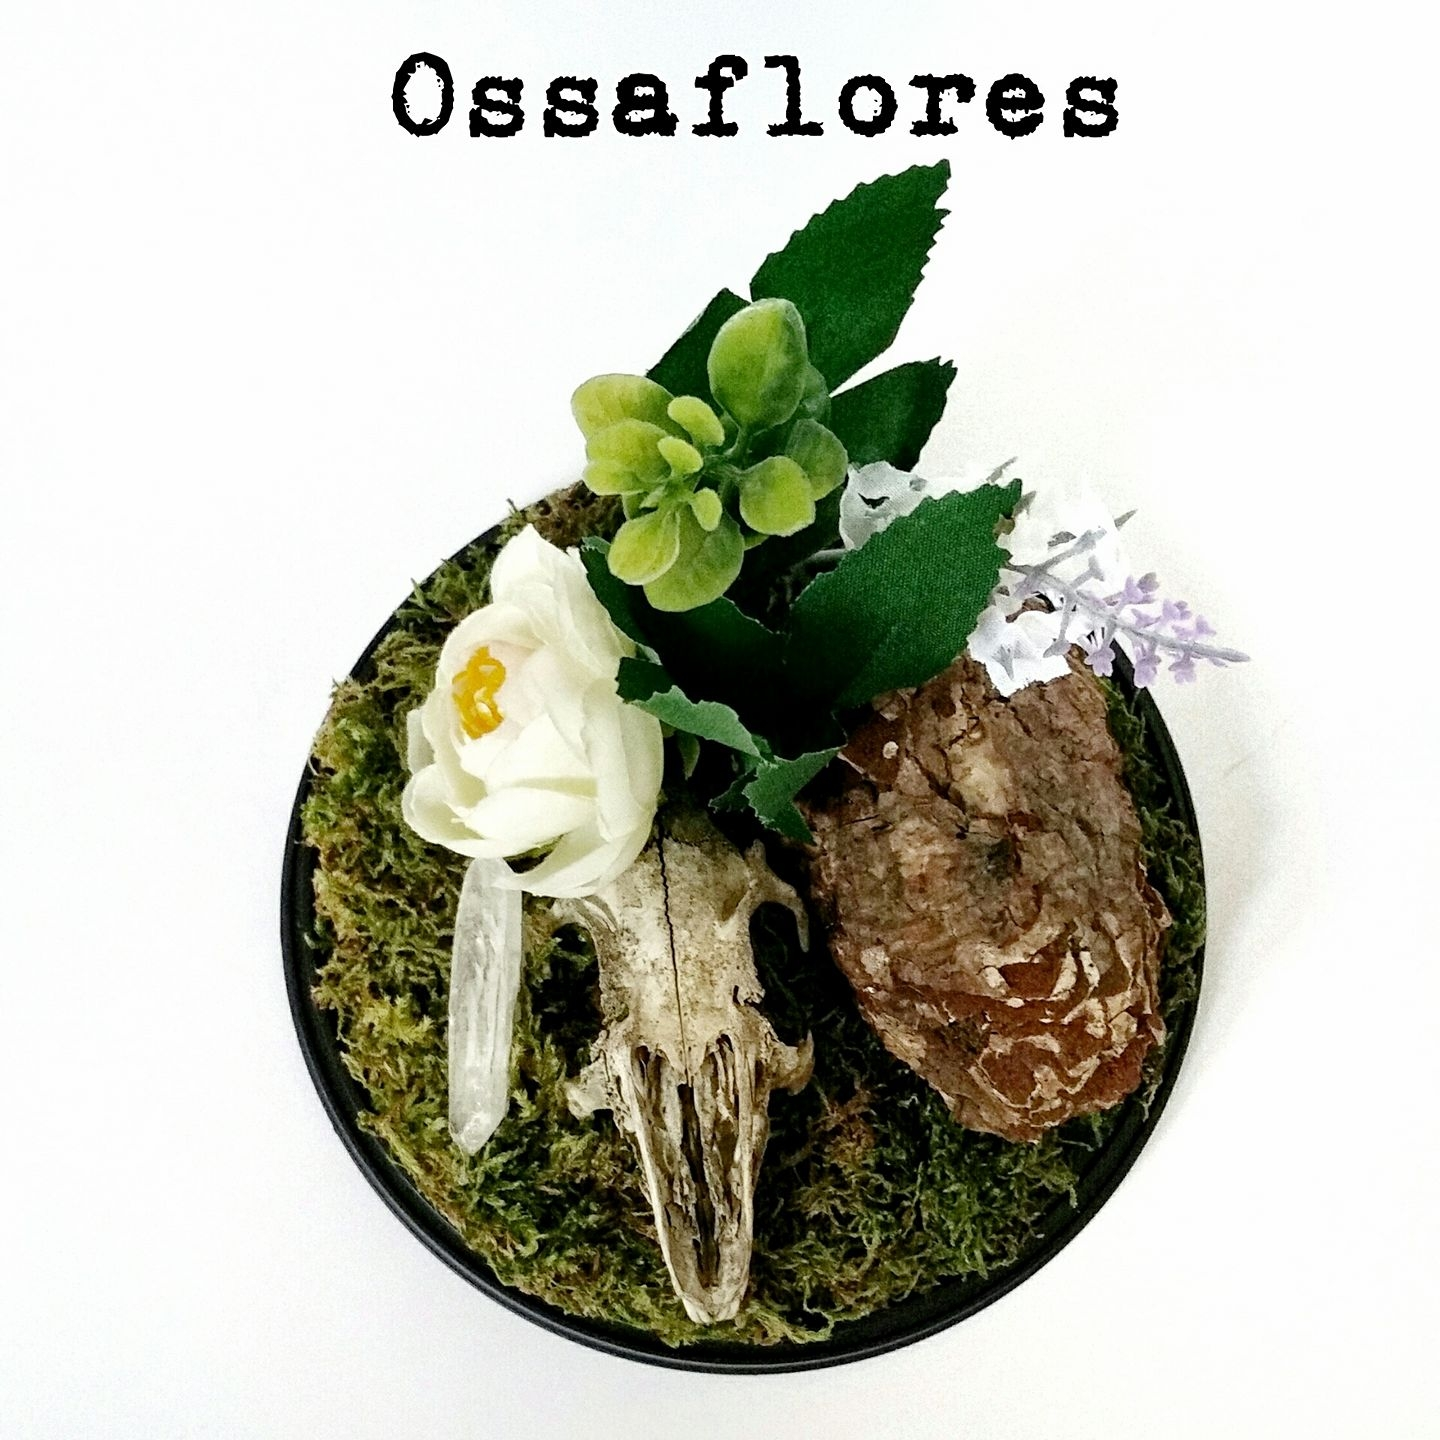 Ossaflores 9 - green - alternative wedding table centrepieces - unconventional wedding day - skulls